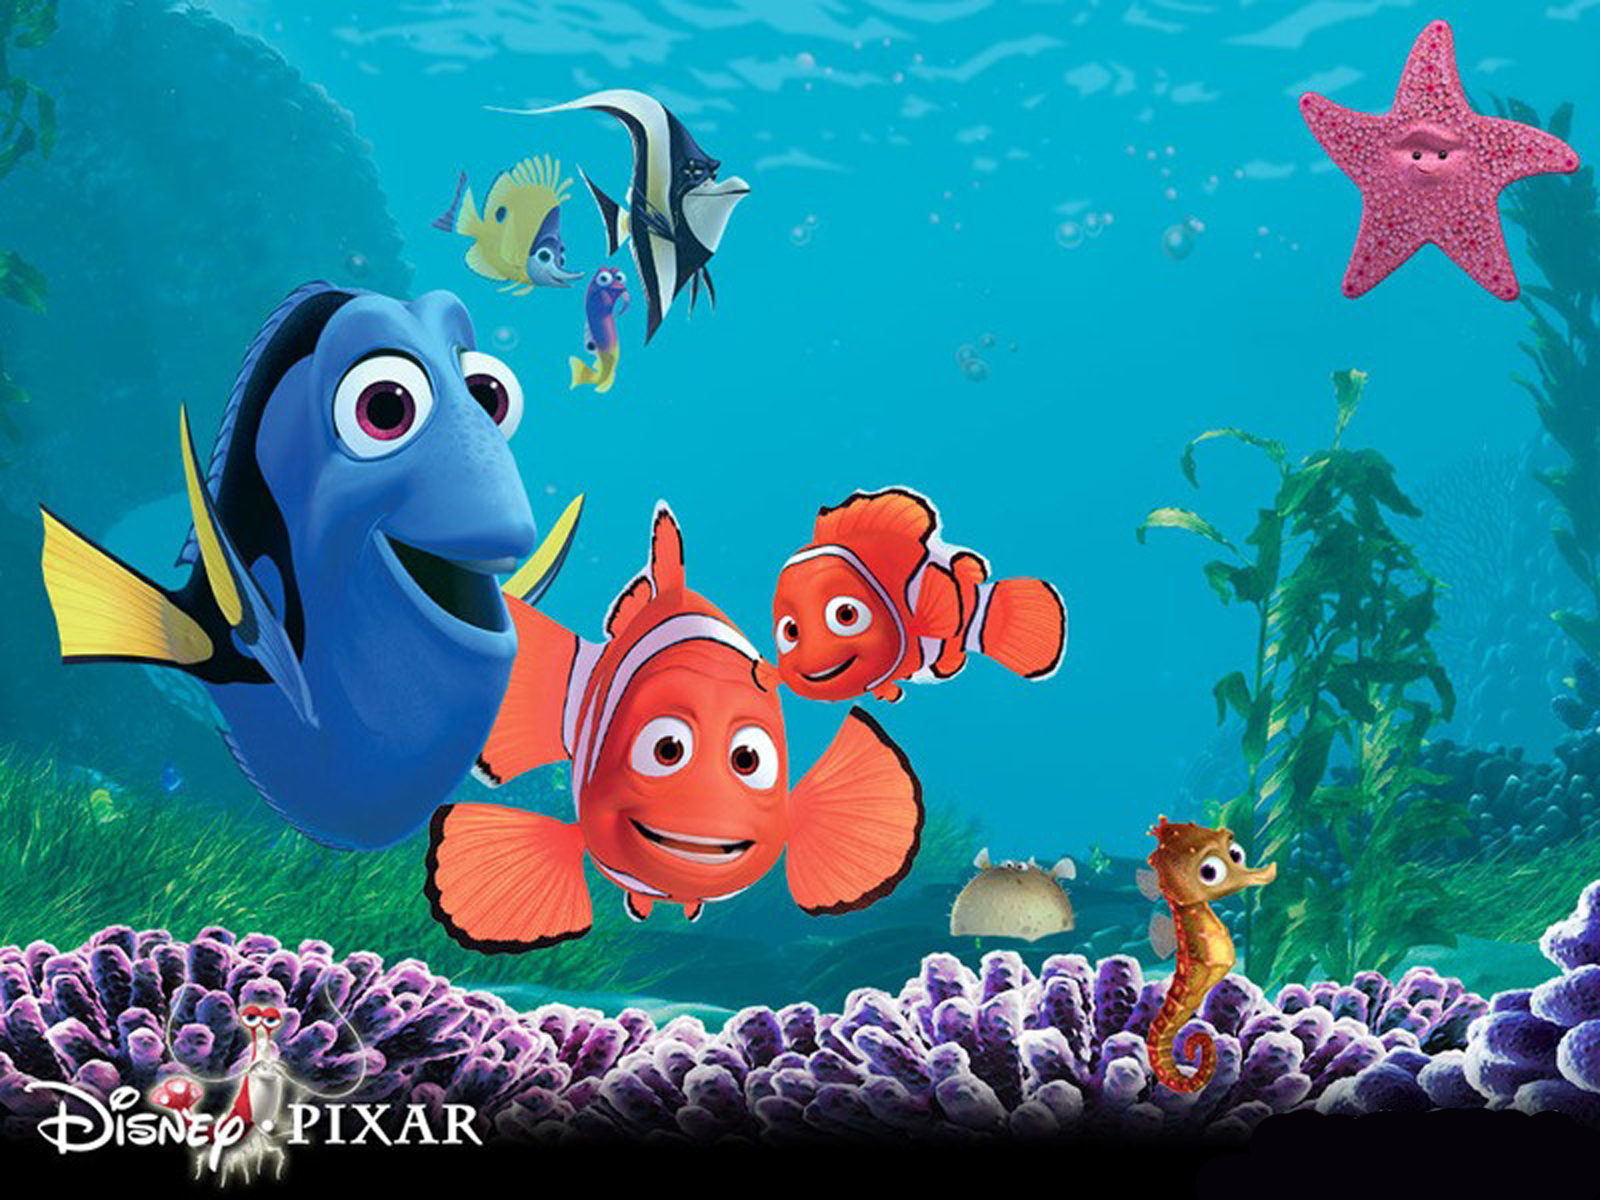 http://4.bp.blogspot.com/-MFMJAQRGLbE/TnpSLmuCy9I/AAAAAAAABQw/knFG-3TEN6w/s1600/Finding_Nemo_Dory_Marlin_3D_Disney_Theme_Desktop_Wallpapers_Vvallpaper.net.jpg.jpg